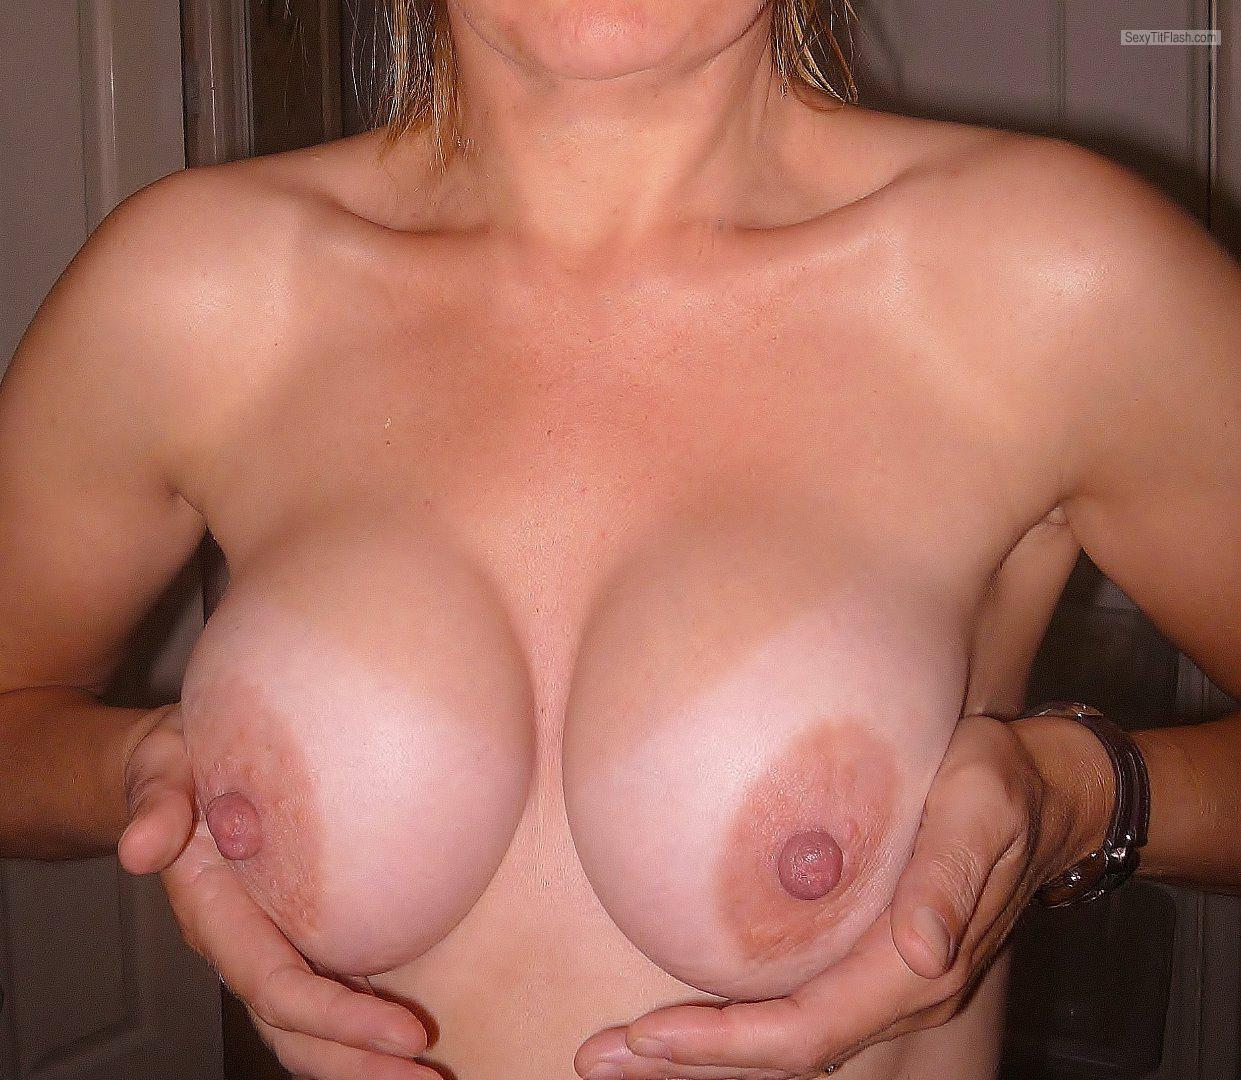 Medium Tits Of My Ex-Girlfriend Jane